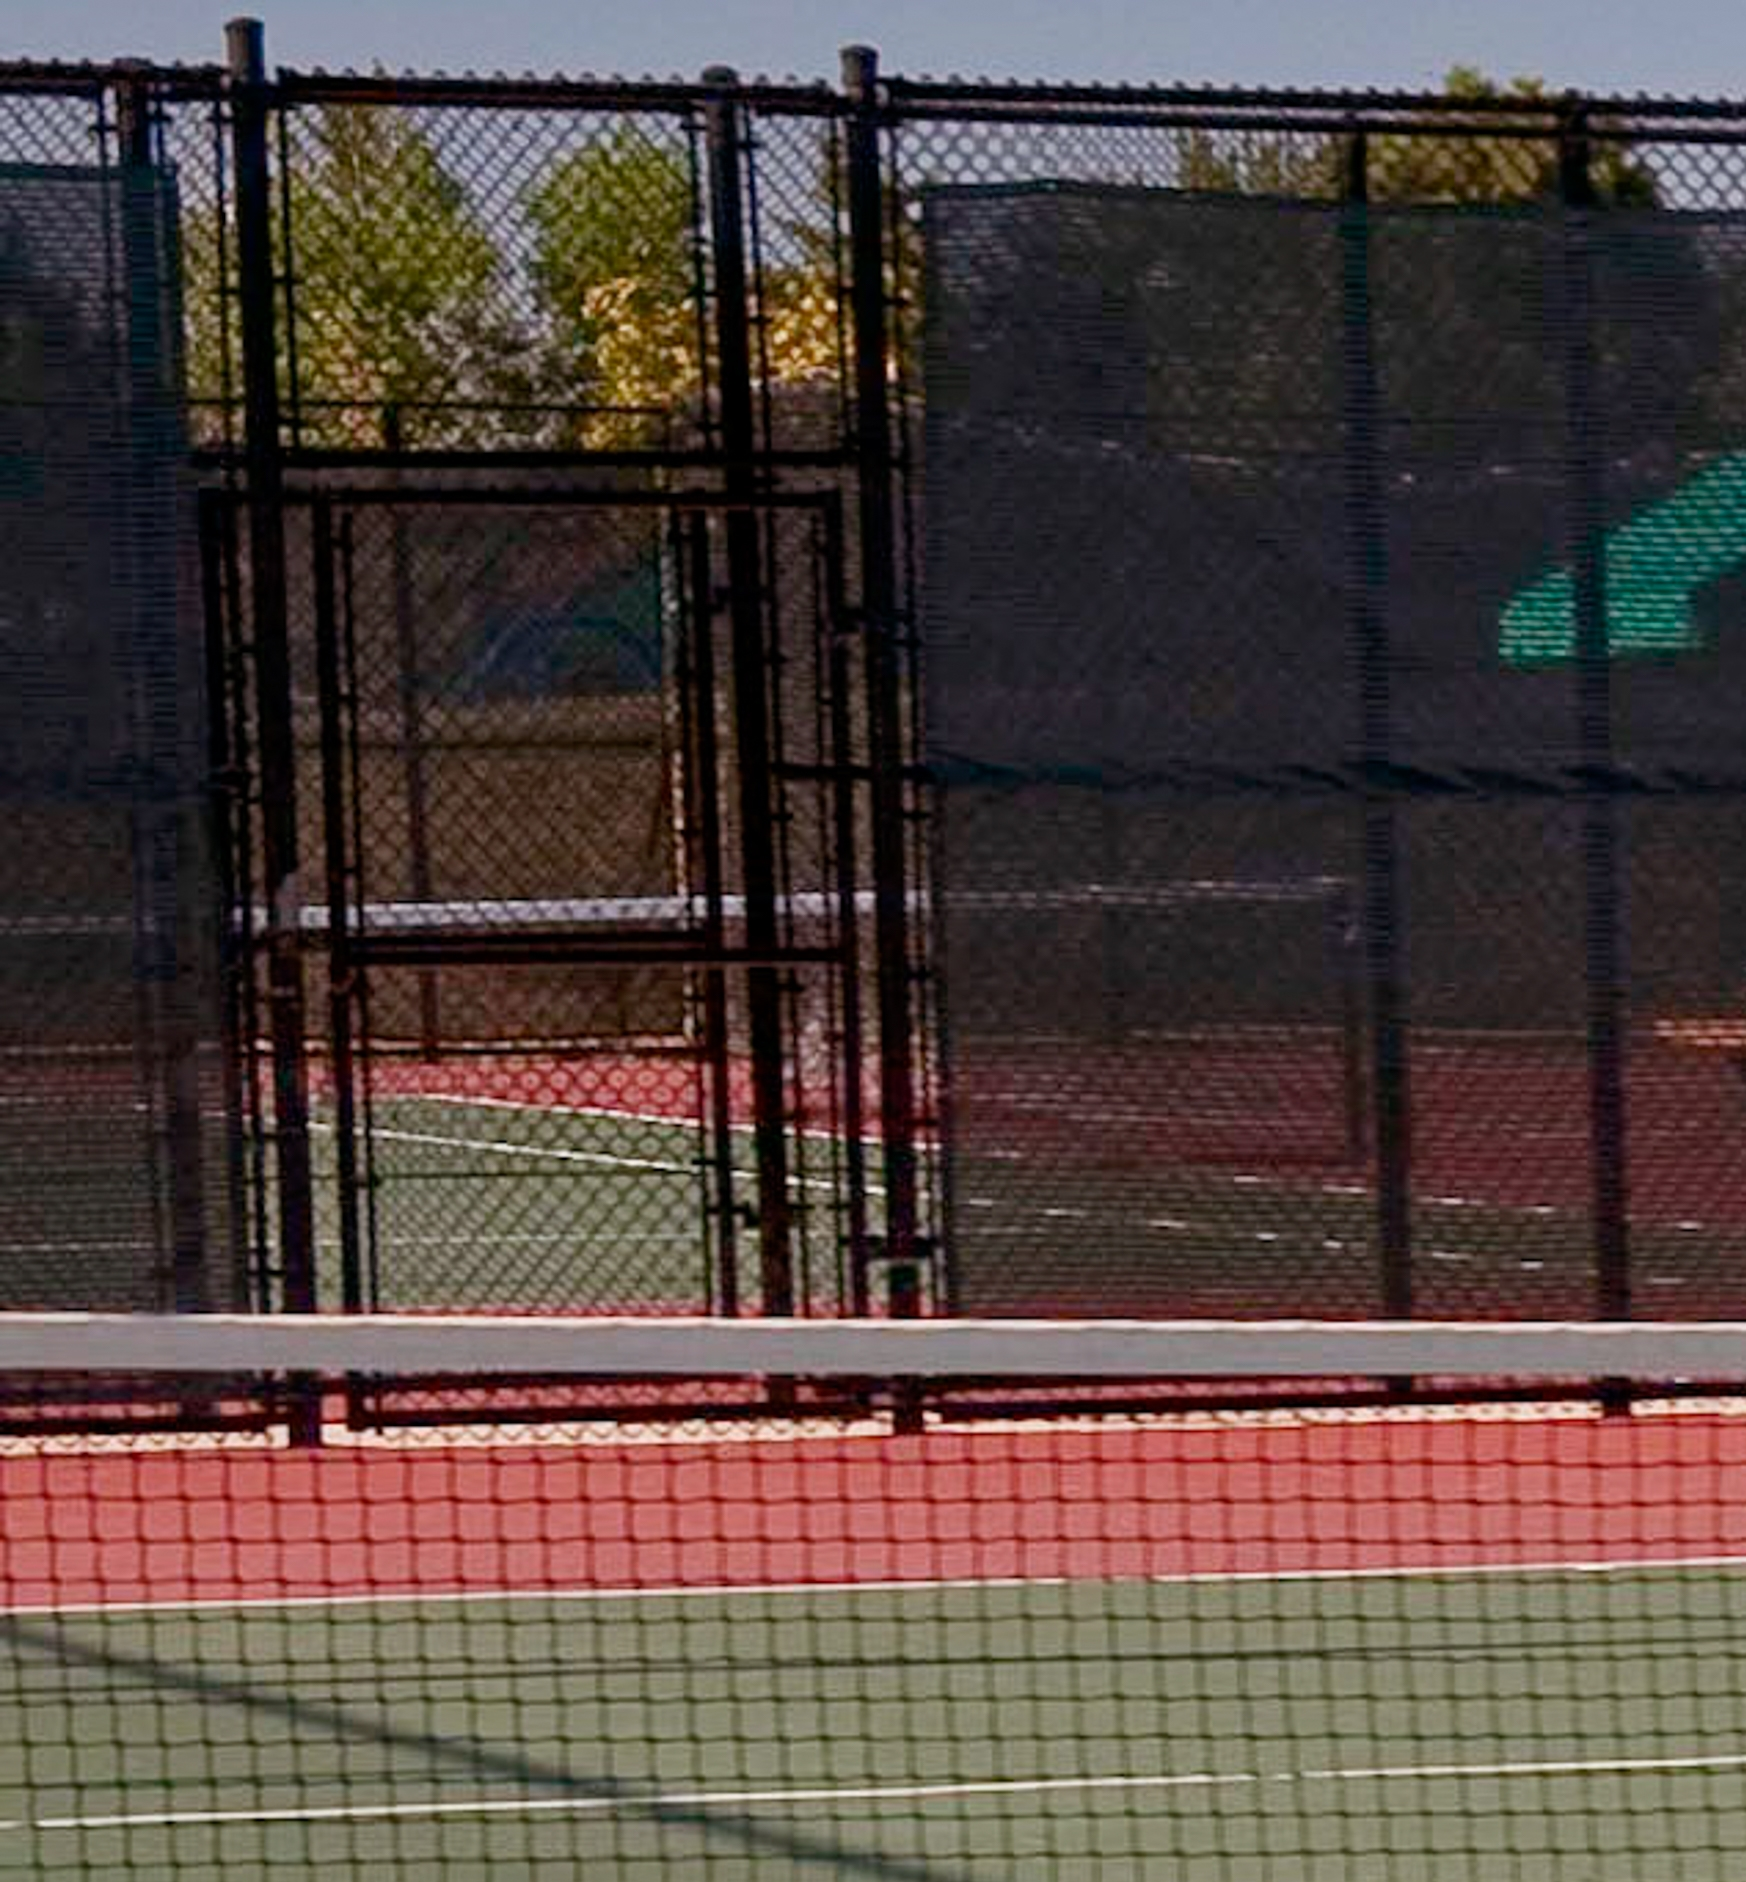 The tennis courts at    Utah Park    are ADA compliant with direct access to courts,